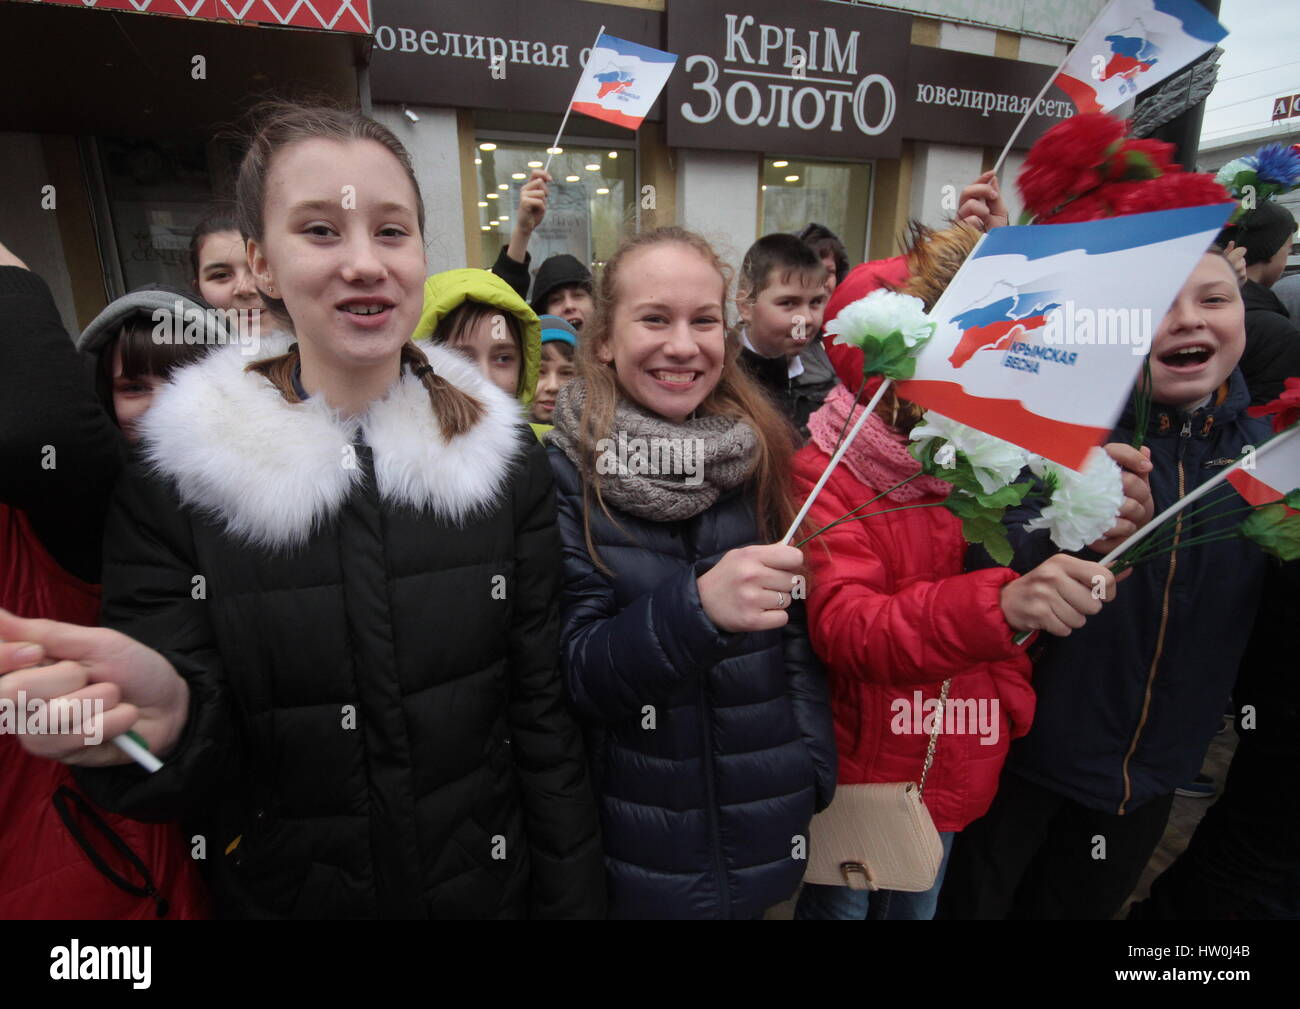 Simferopol, Russia. 16th March 2017. Teenagers hold Crimean flags during a celebration marking the 3rd anniversary - Stock Image